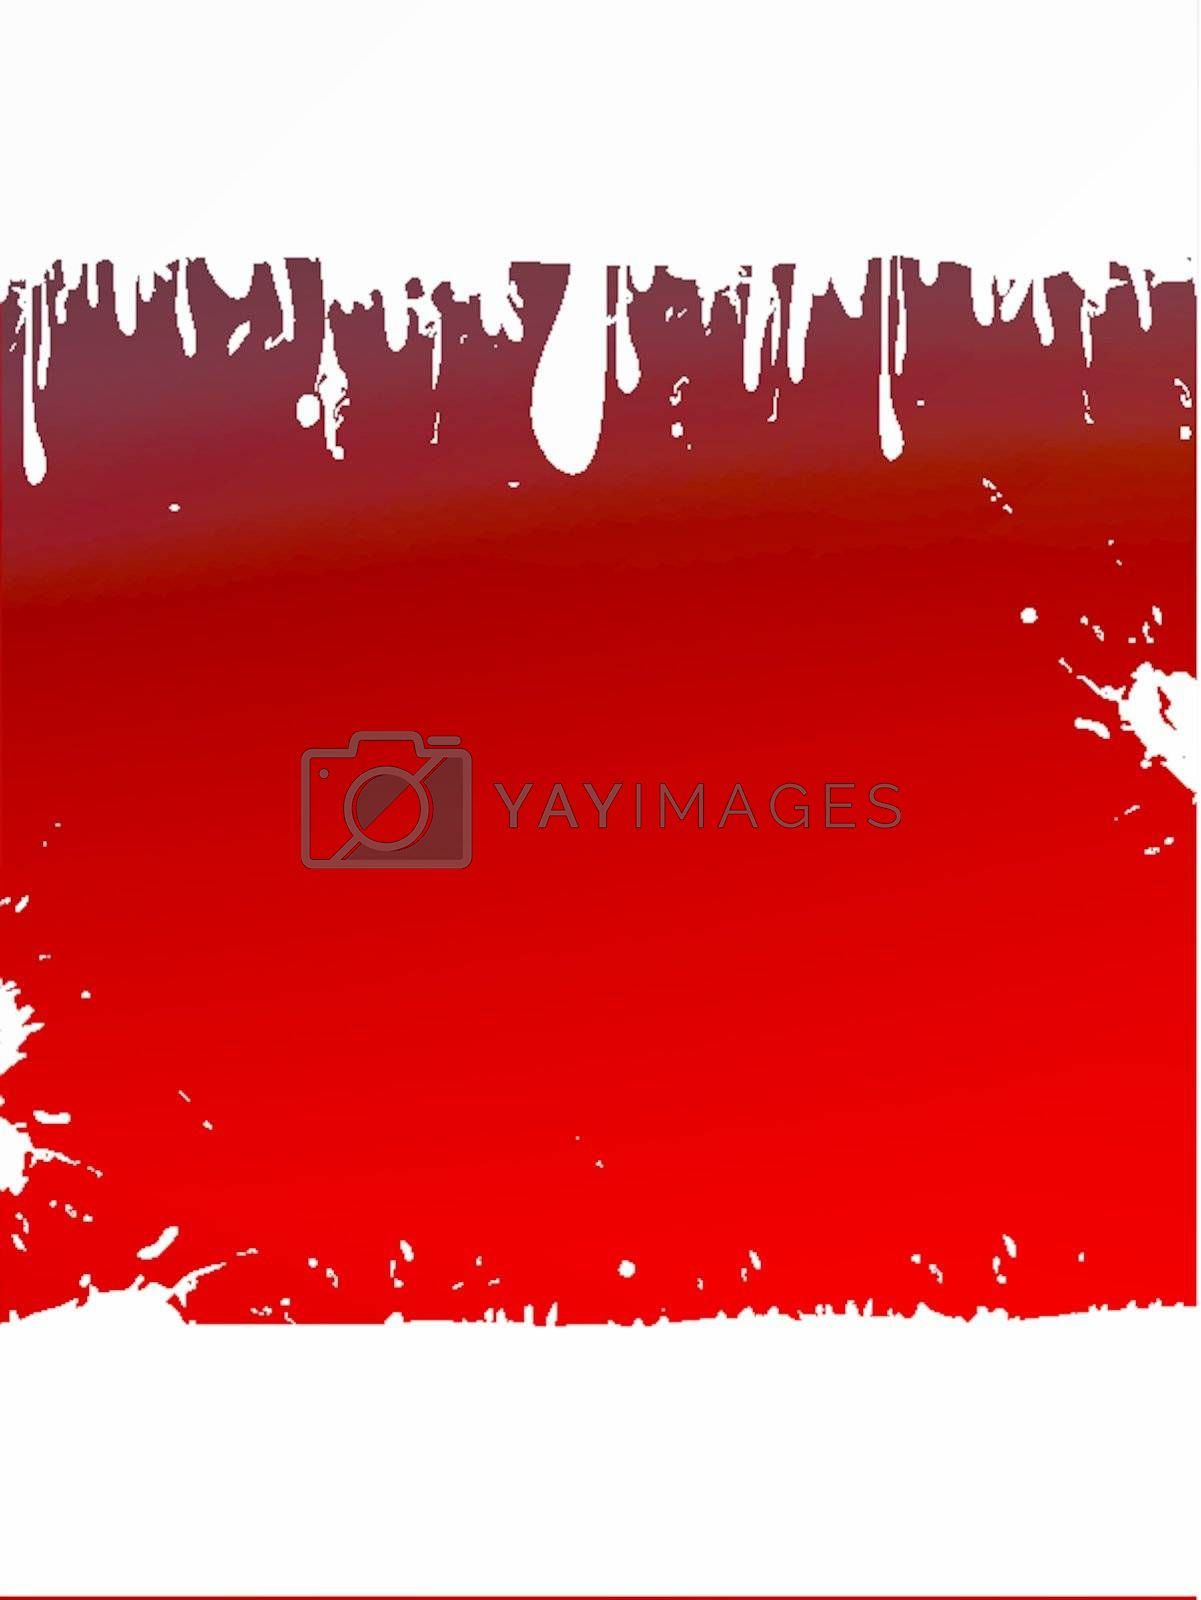 grunge liquid background with red copyspace for your text